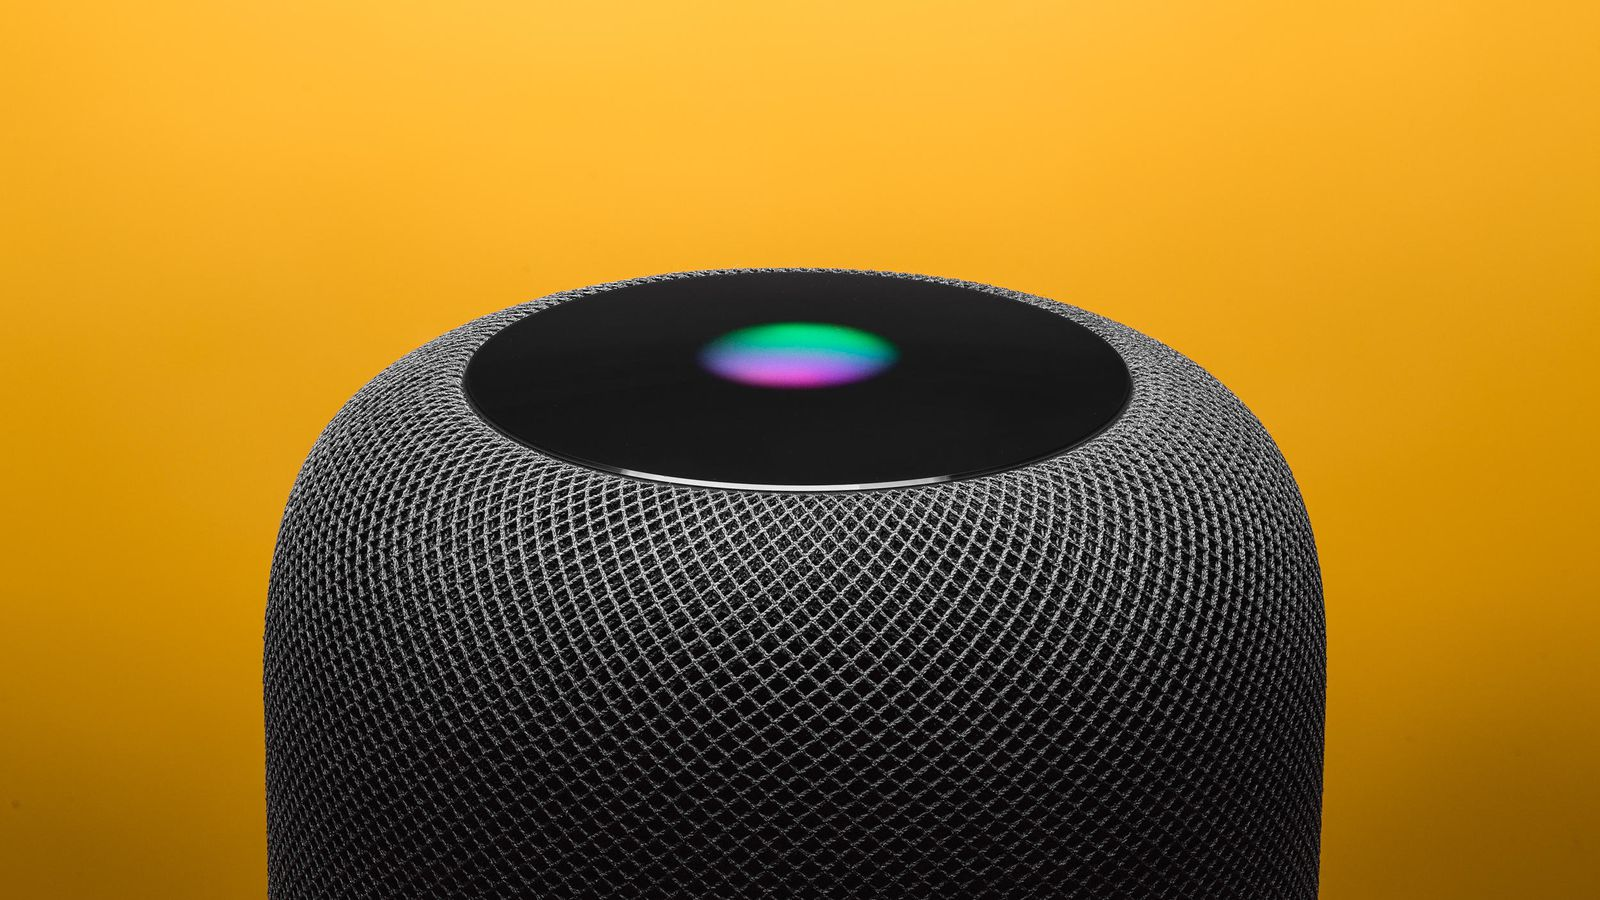 Apple discontinues the original HomePod; to focus on HomePod mini